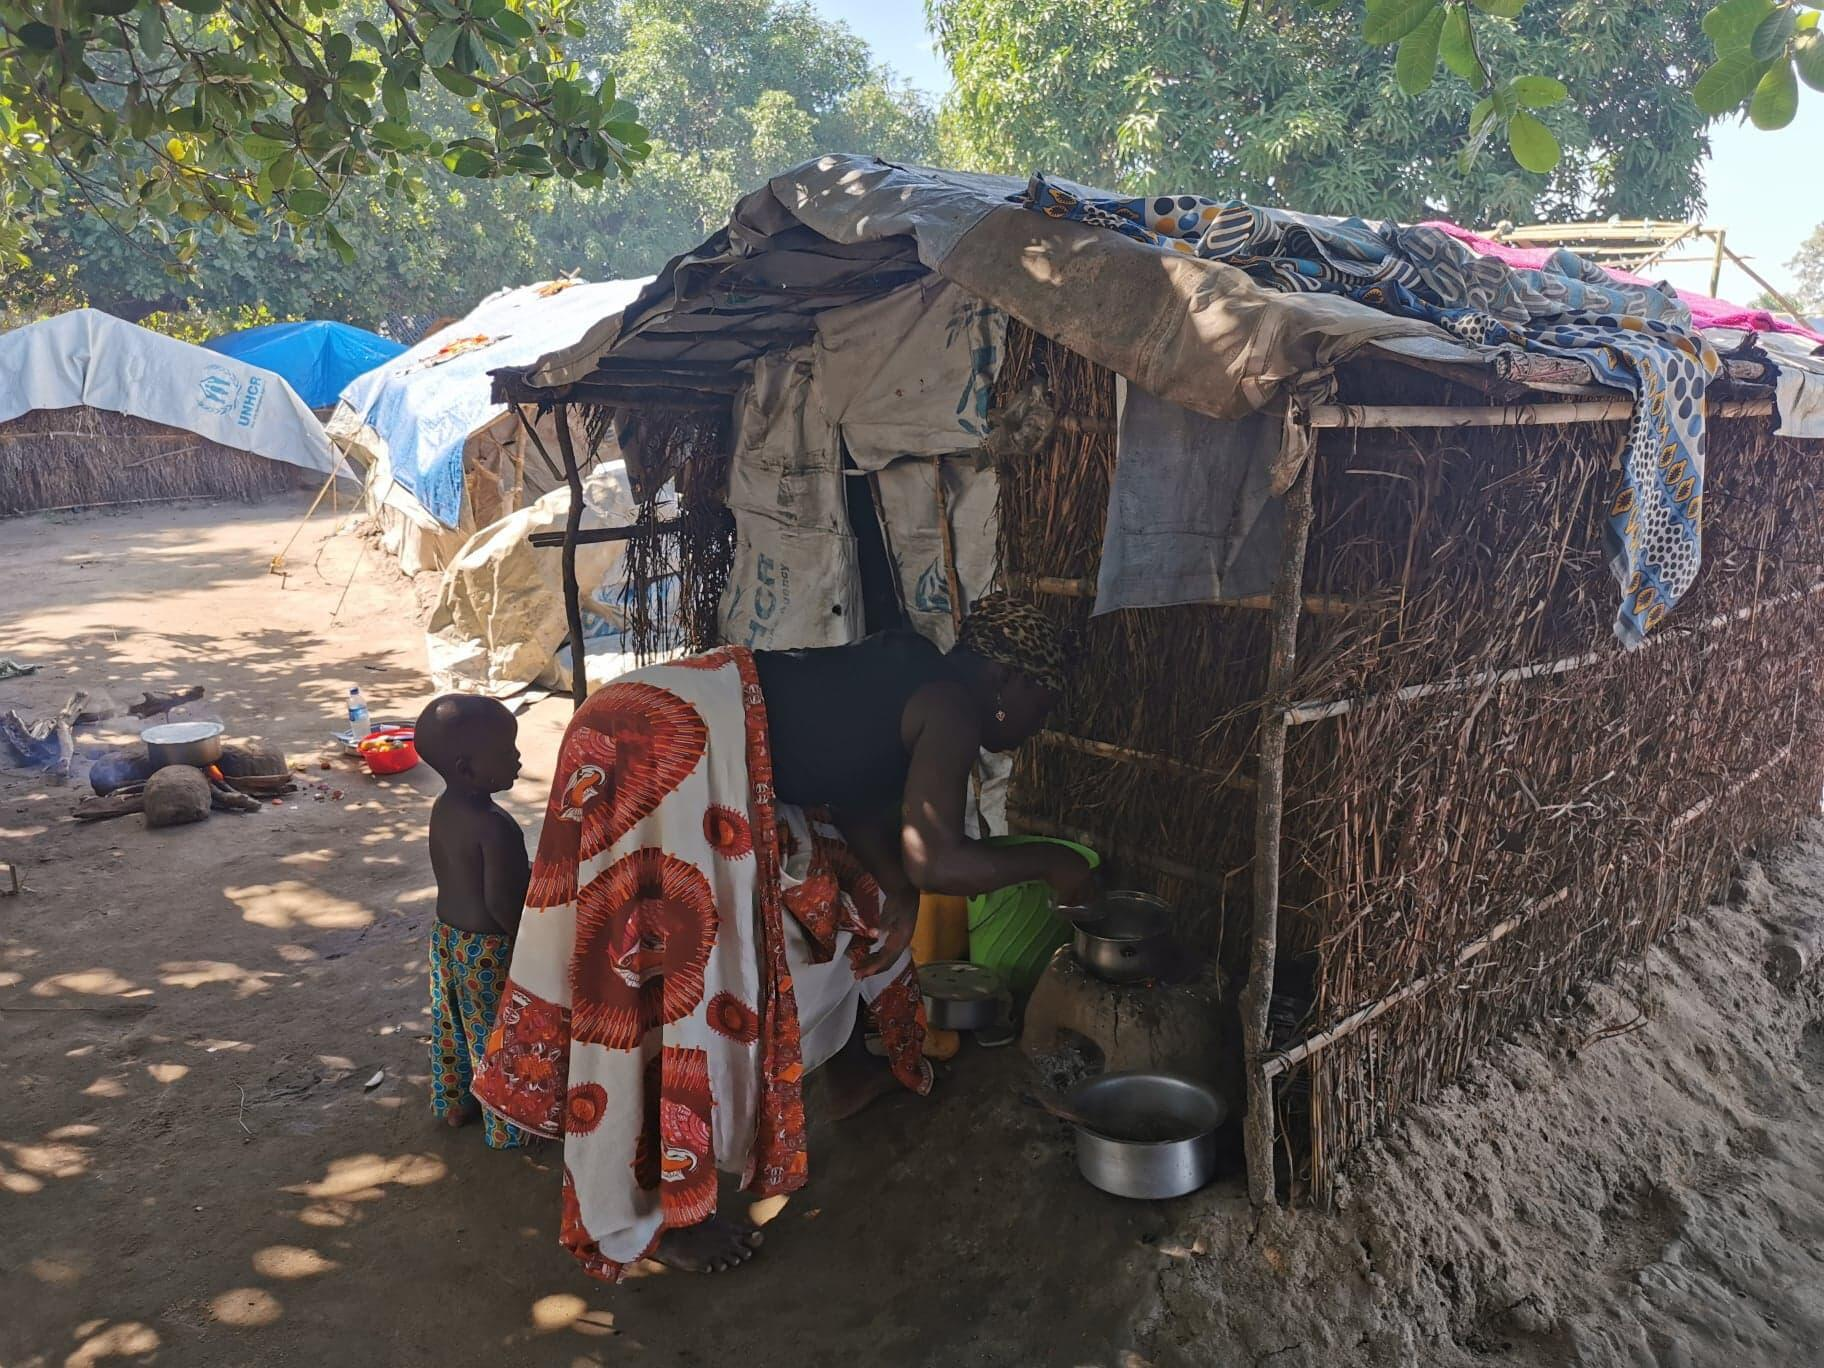 Internally displaced people in the Cabo Delgado area in Mozambique struggle to survive in camps where there are no facilities.